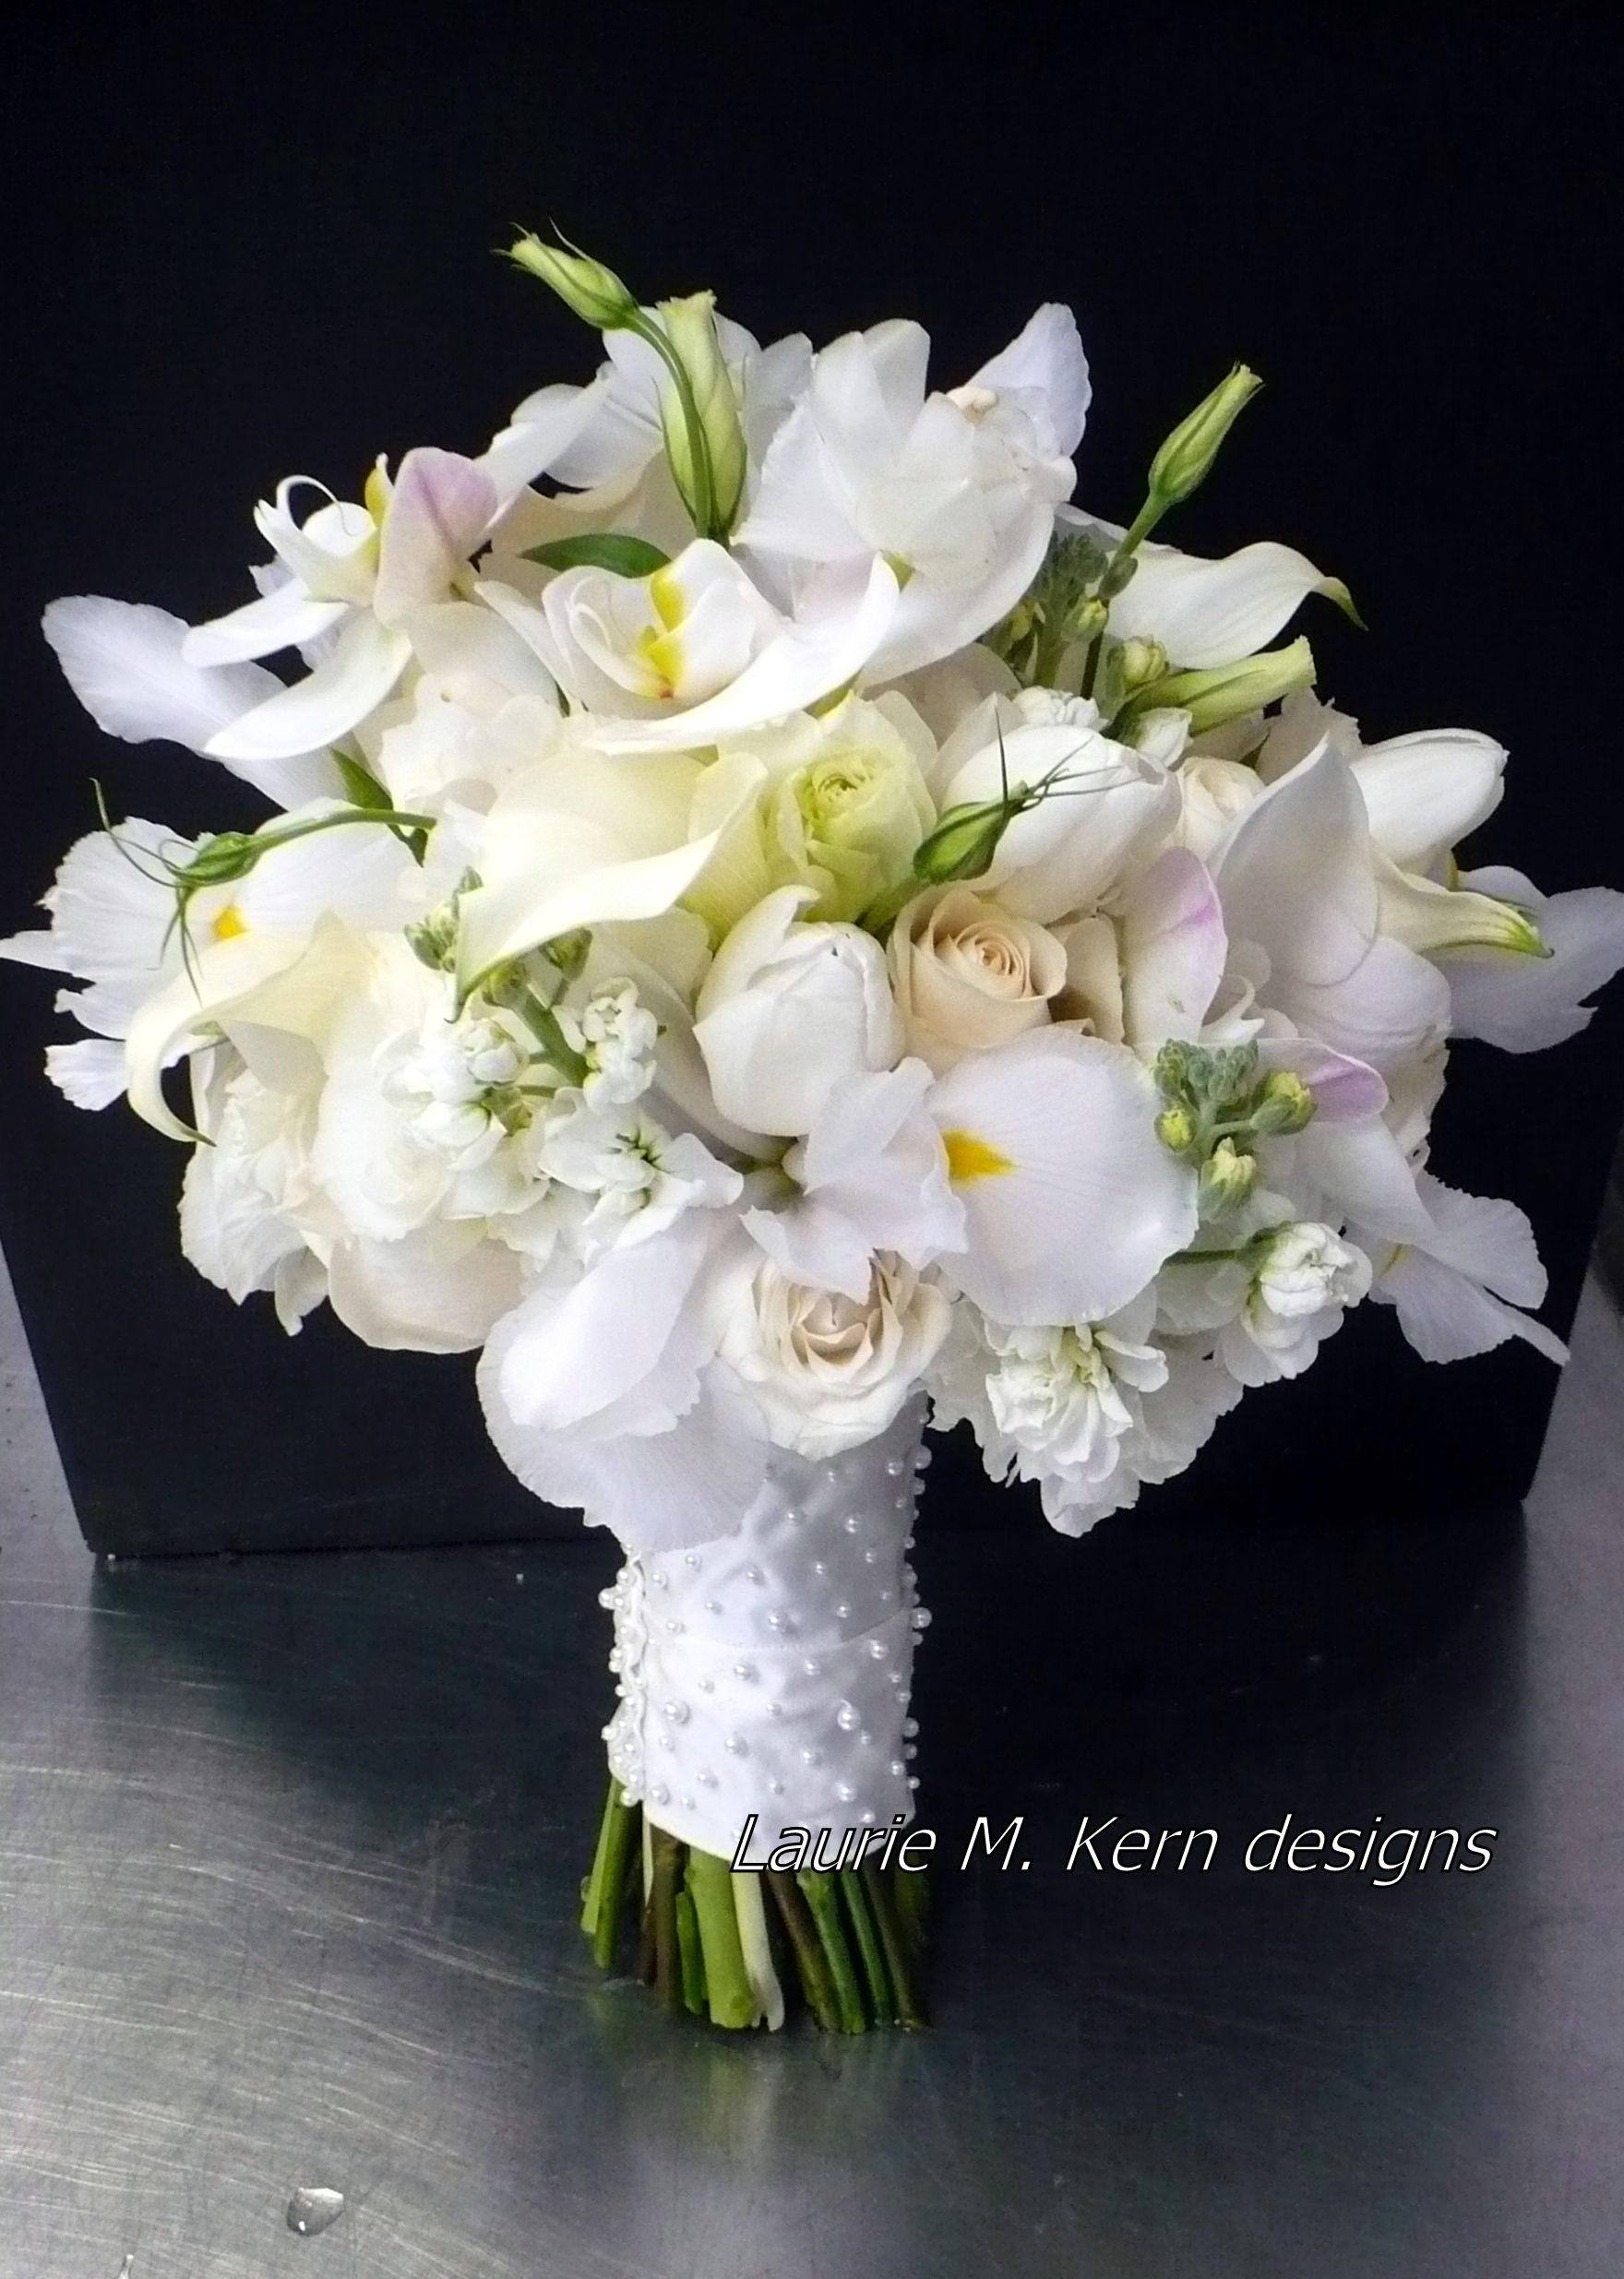 Lady In Pearls White Iris Adds So Much Frill Also Phalanophis Orchid Tulip Stock Lisianthus Vendela And Mini Callas